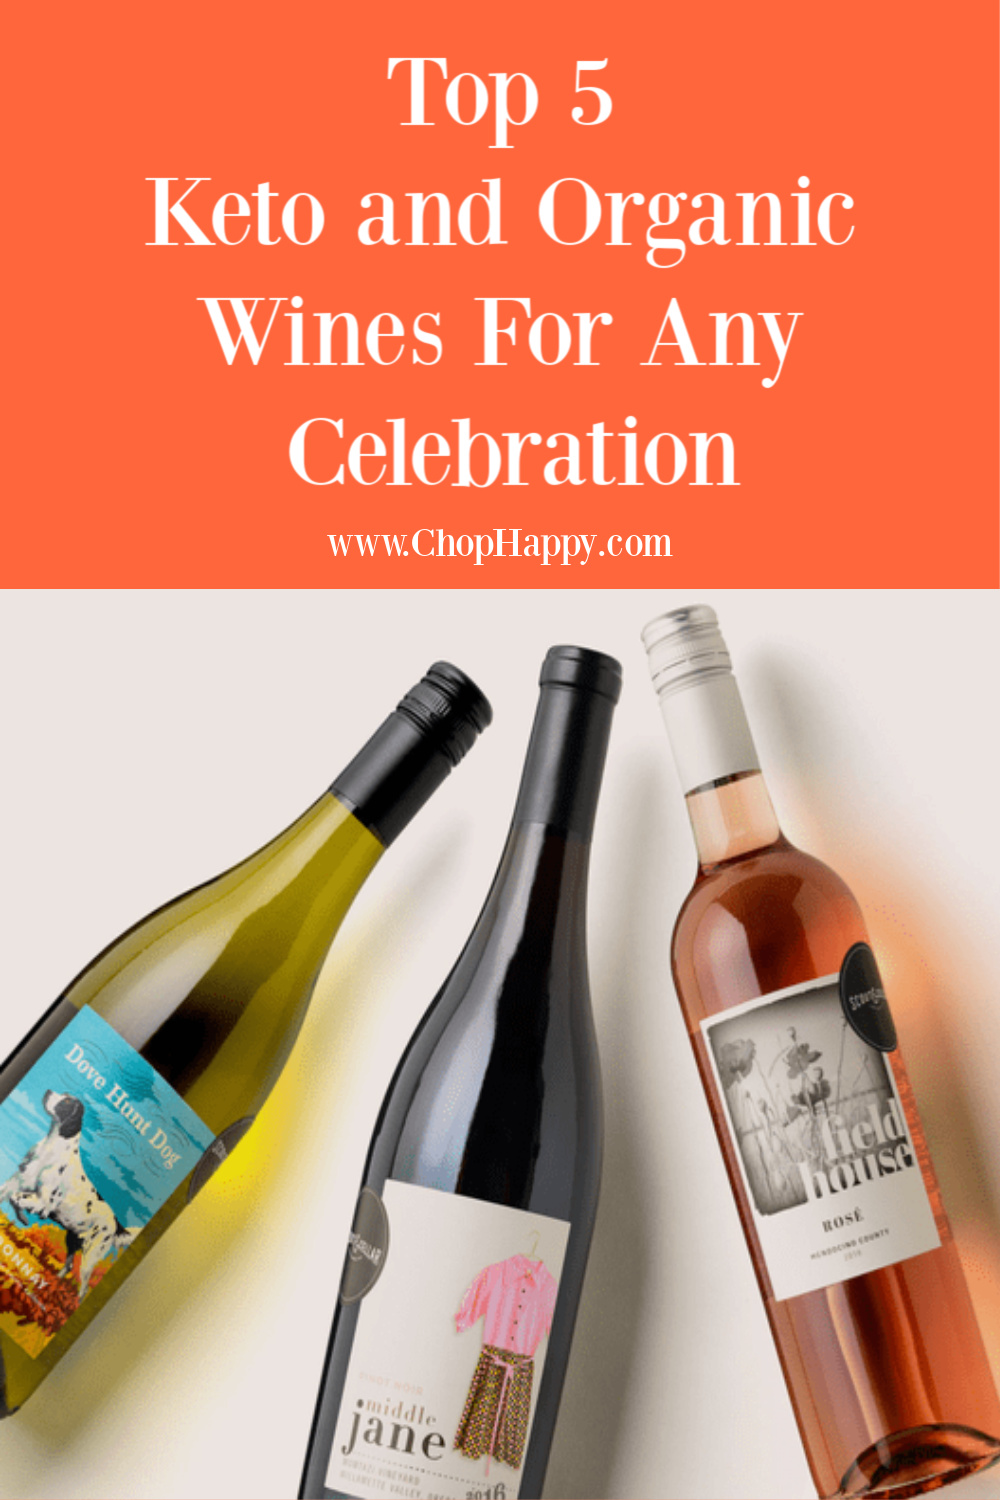 Top 5 Keto and Organic Wines For Any Celebration #keto #Ketowines